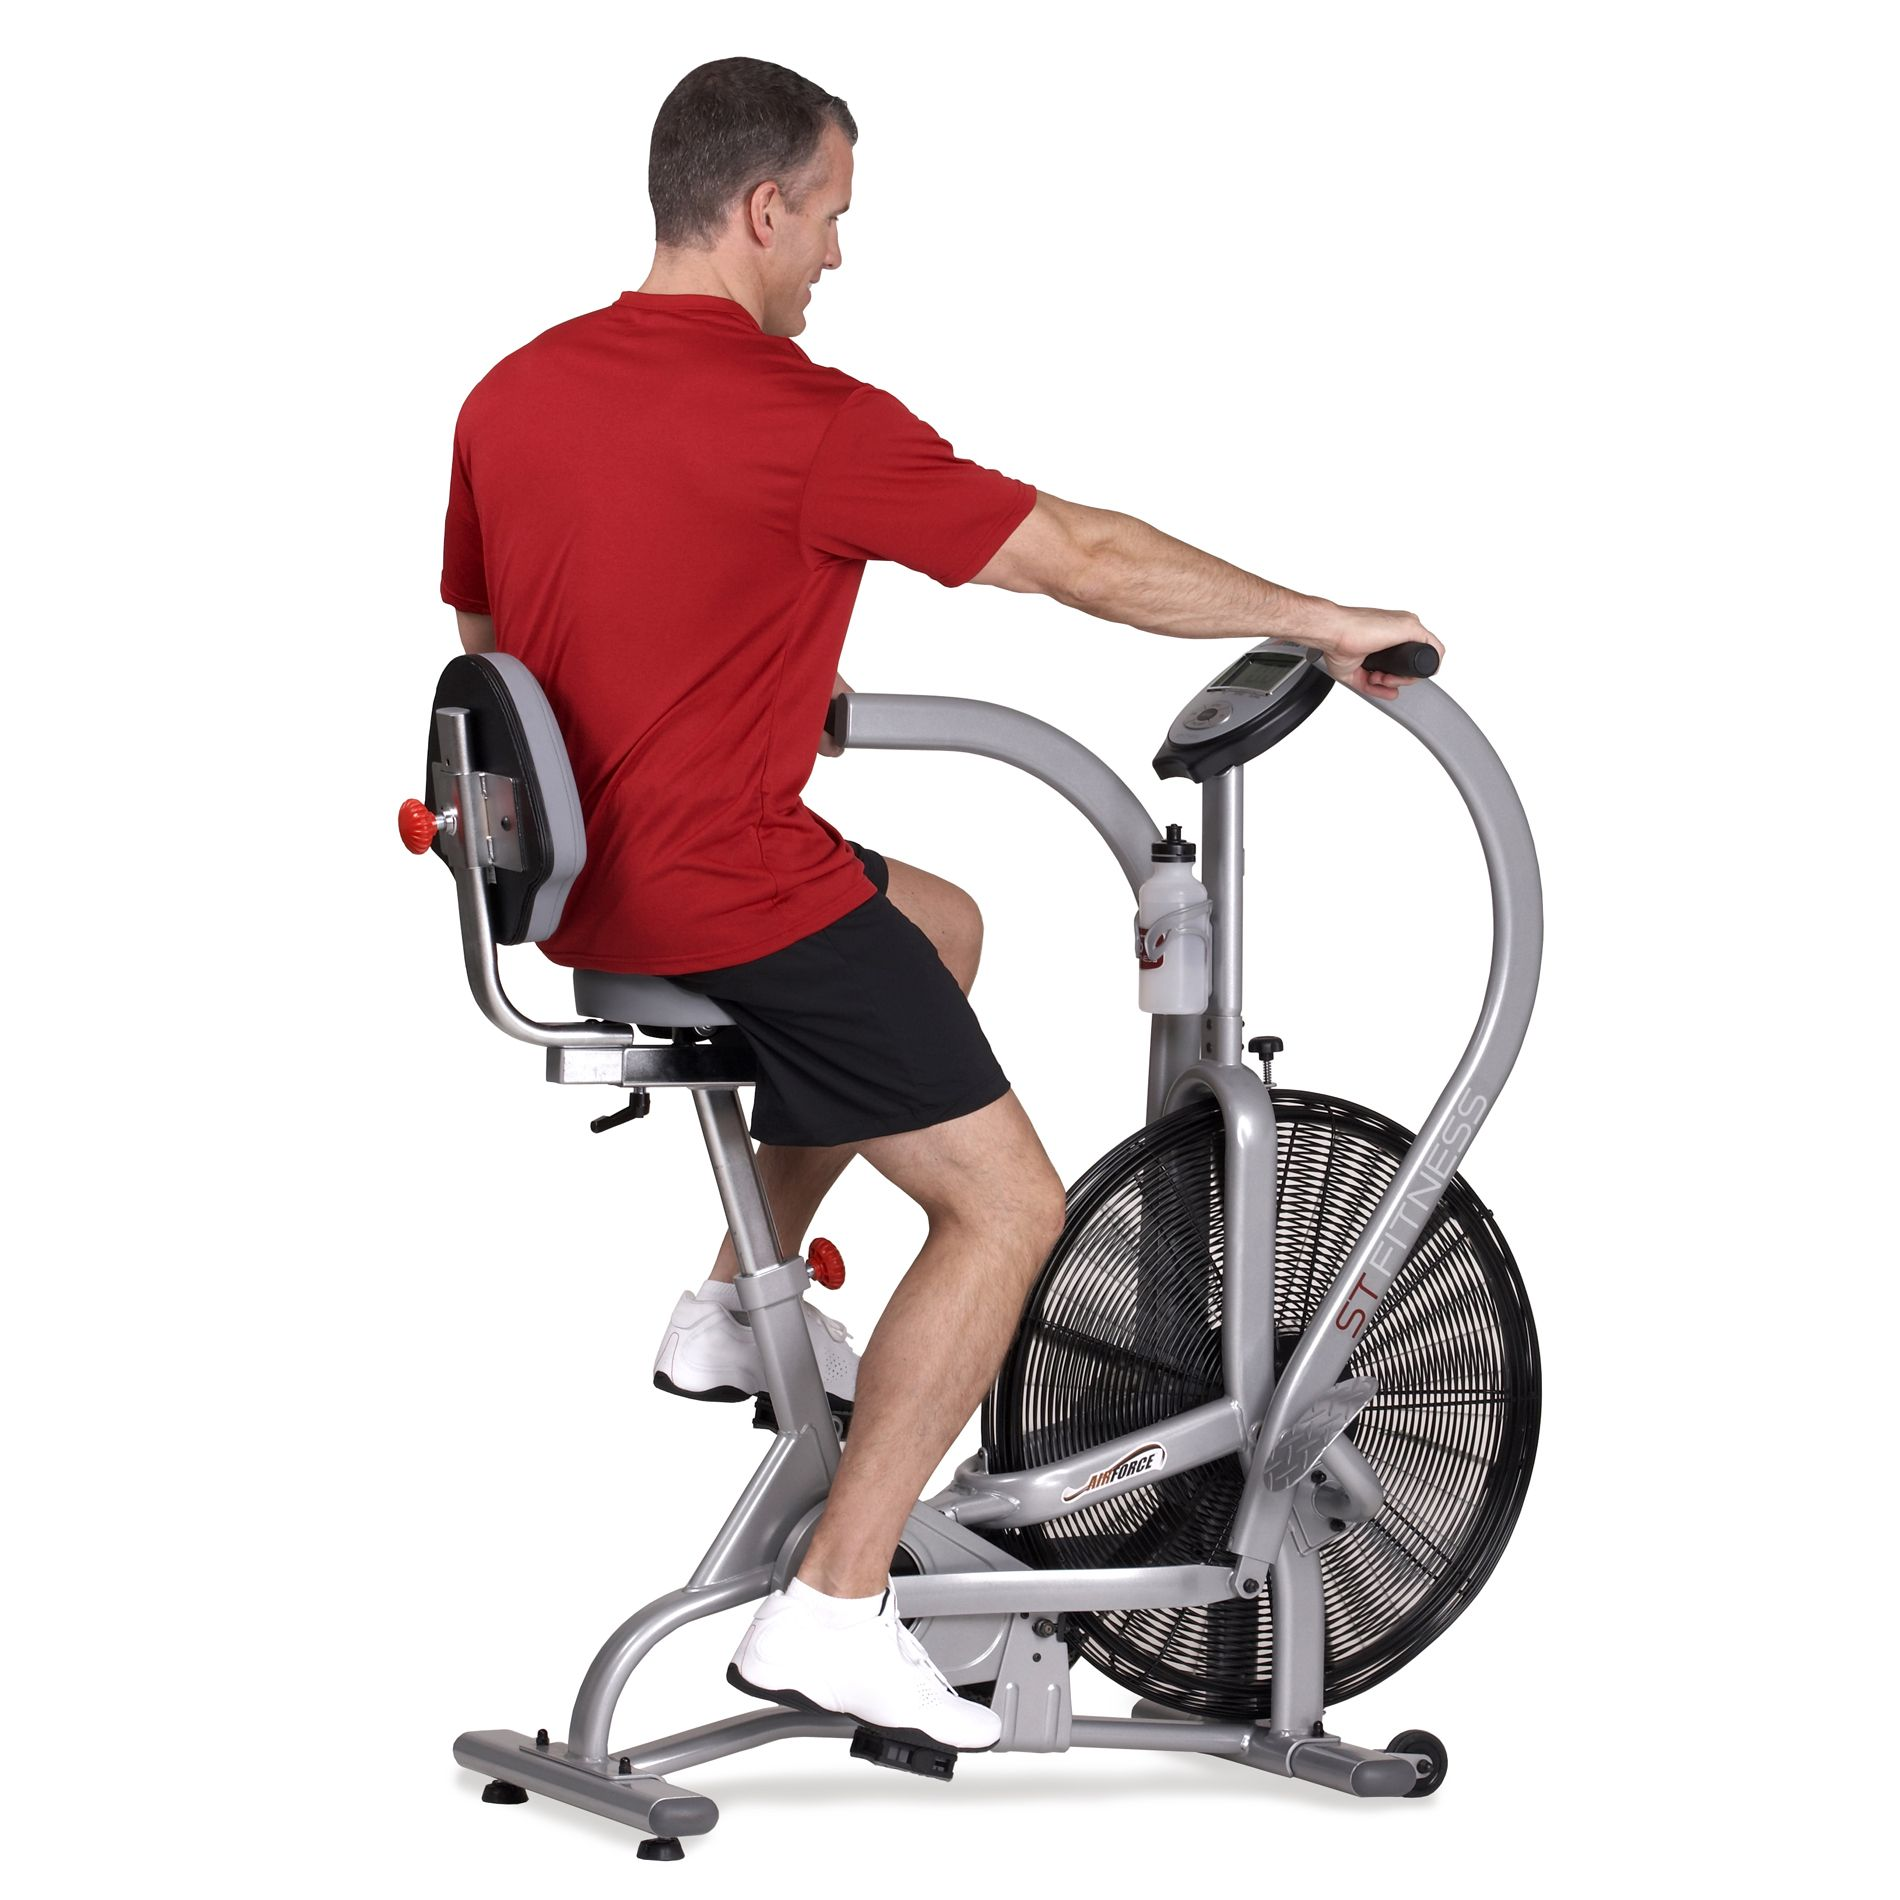 8610 Airforce Fan Exercise Bike